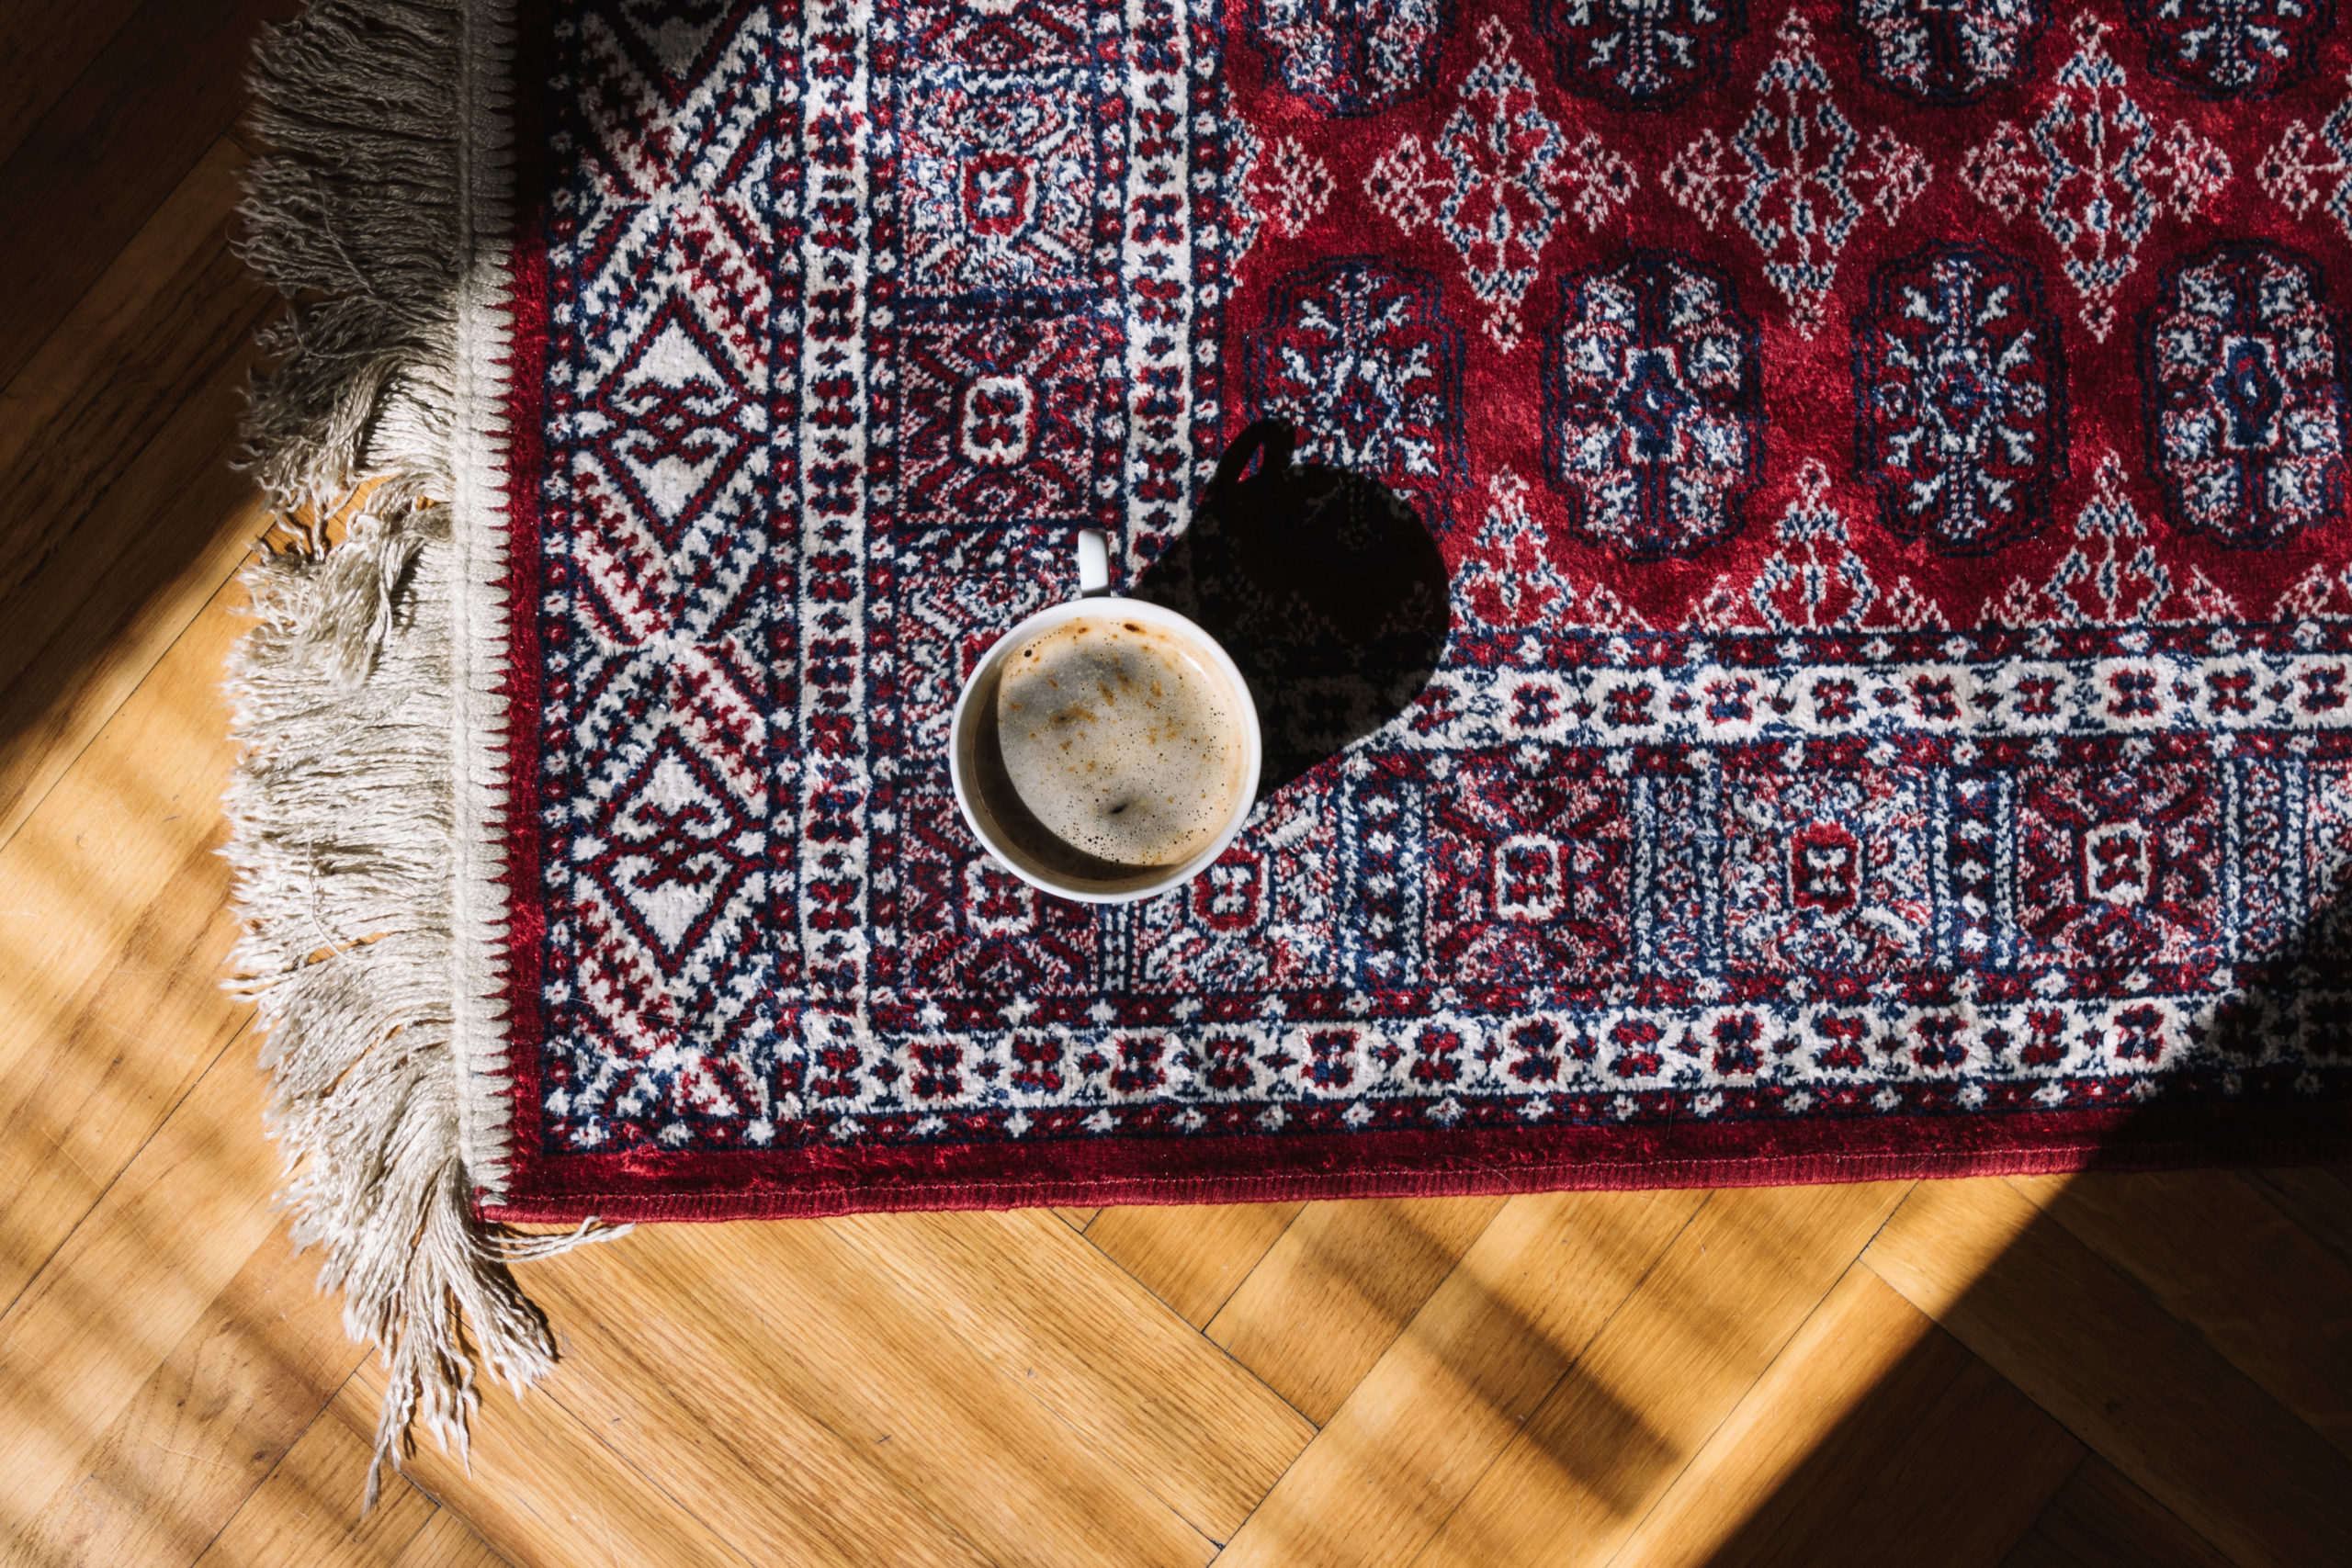 How to Get Coffee Out of Carpet